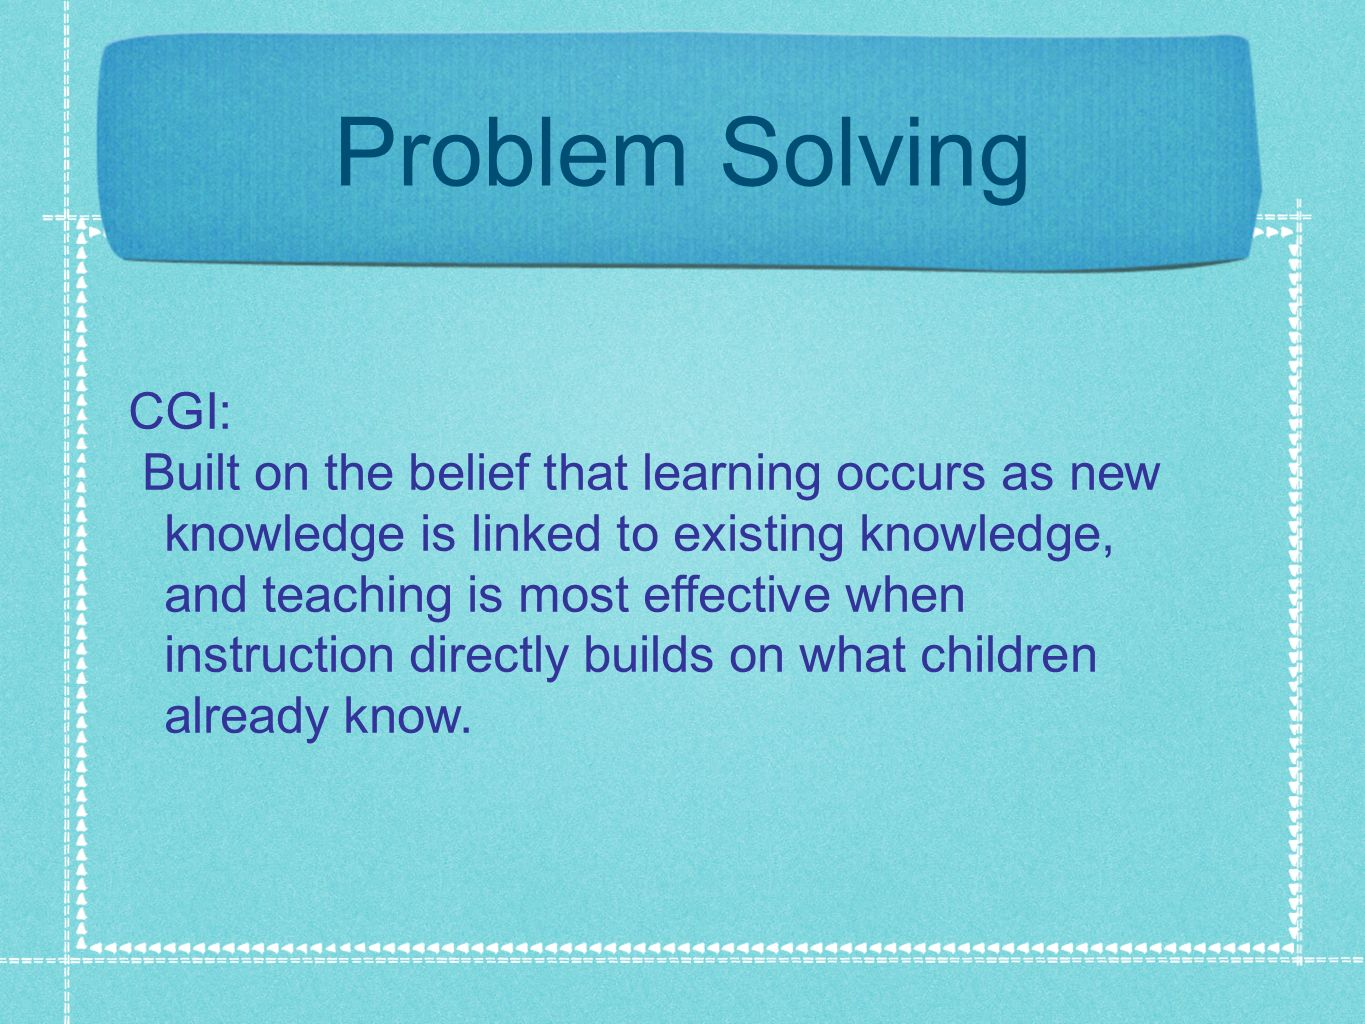 Problem Solving CGI: Built on the belief that learning occurs as new knowledge is linked to existing knowledge, and teaching is most effective when in